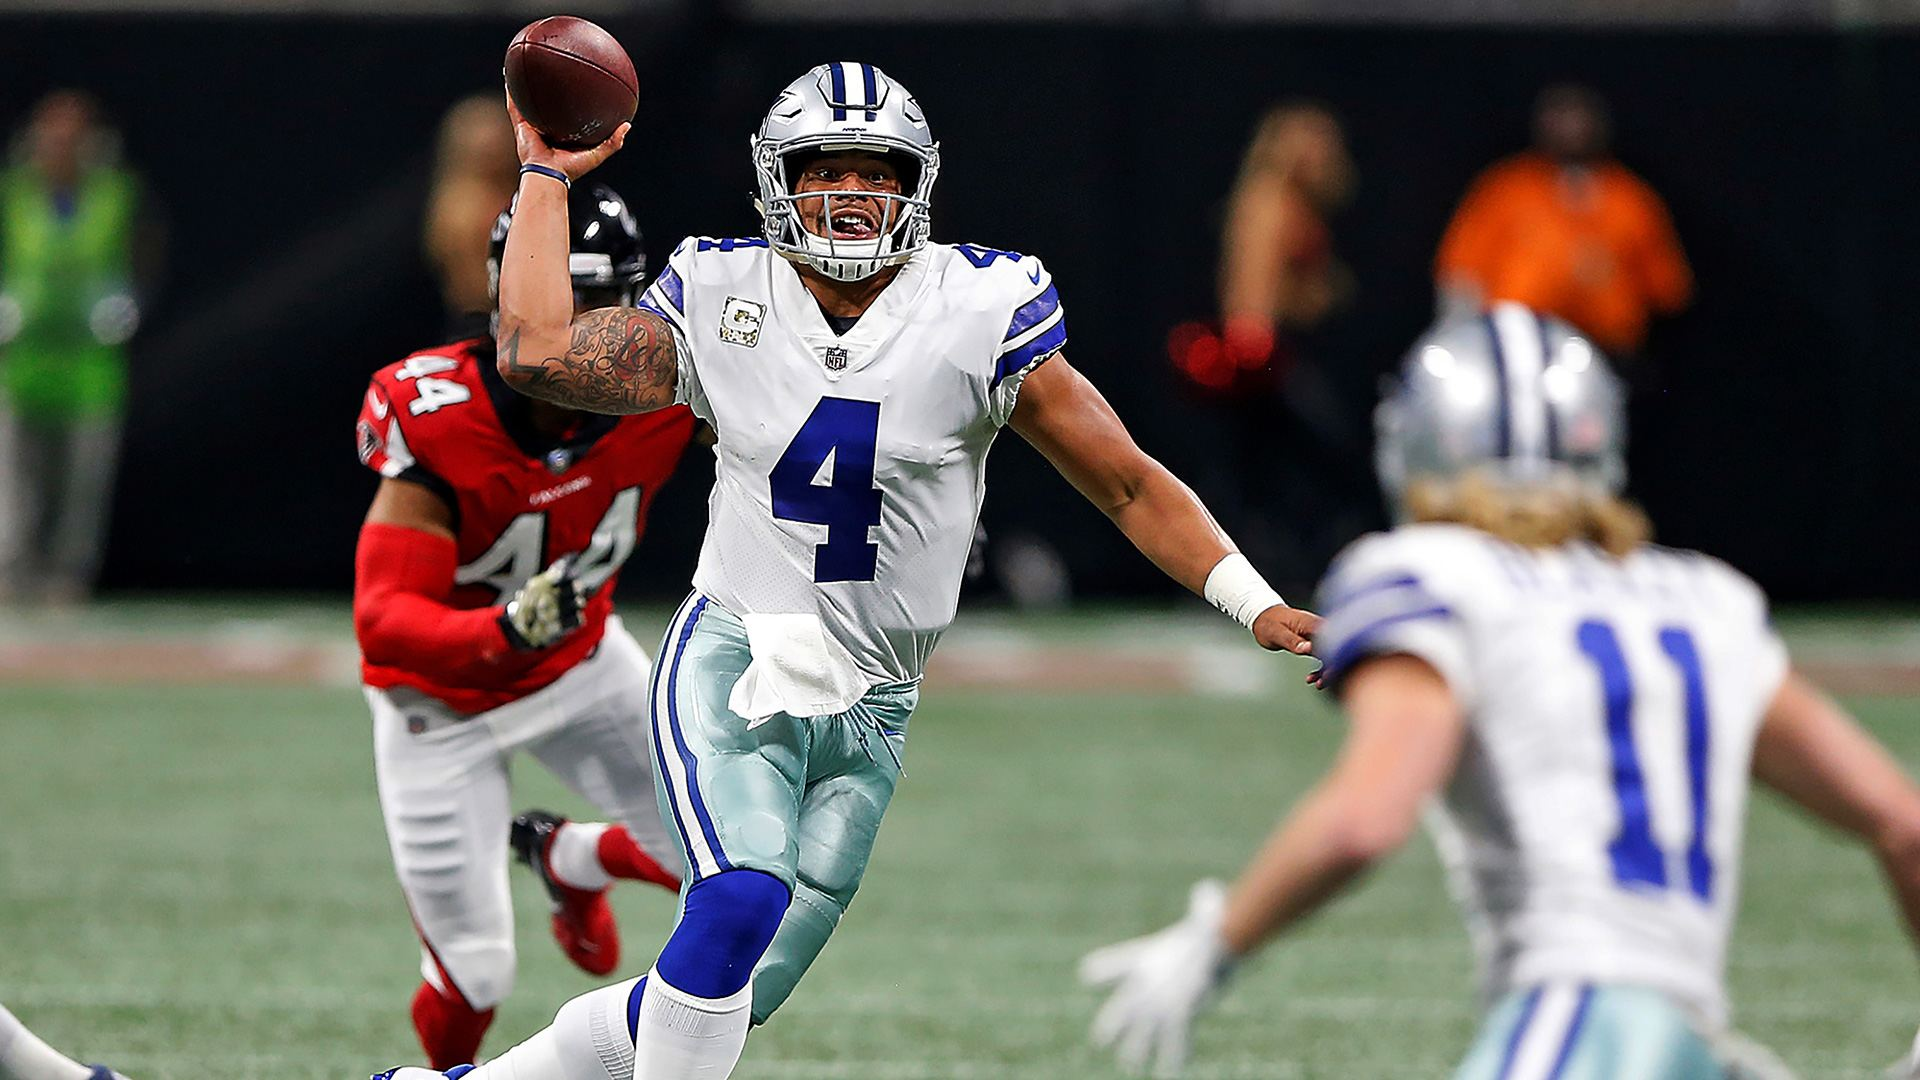 Jwilliams_dallas-cowboys_dak-prescott-and-coaches-both-to-blame-for-cowboys-offensive-woes